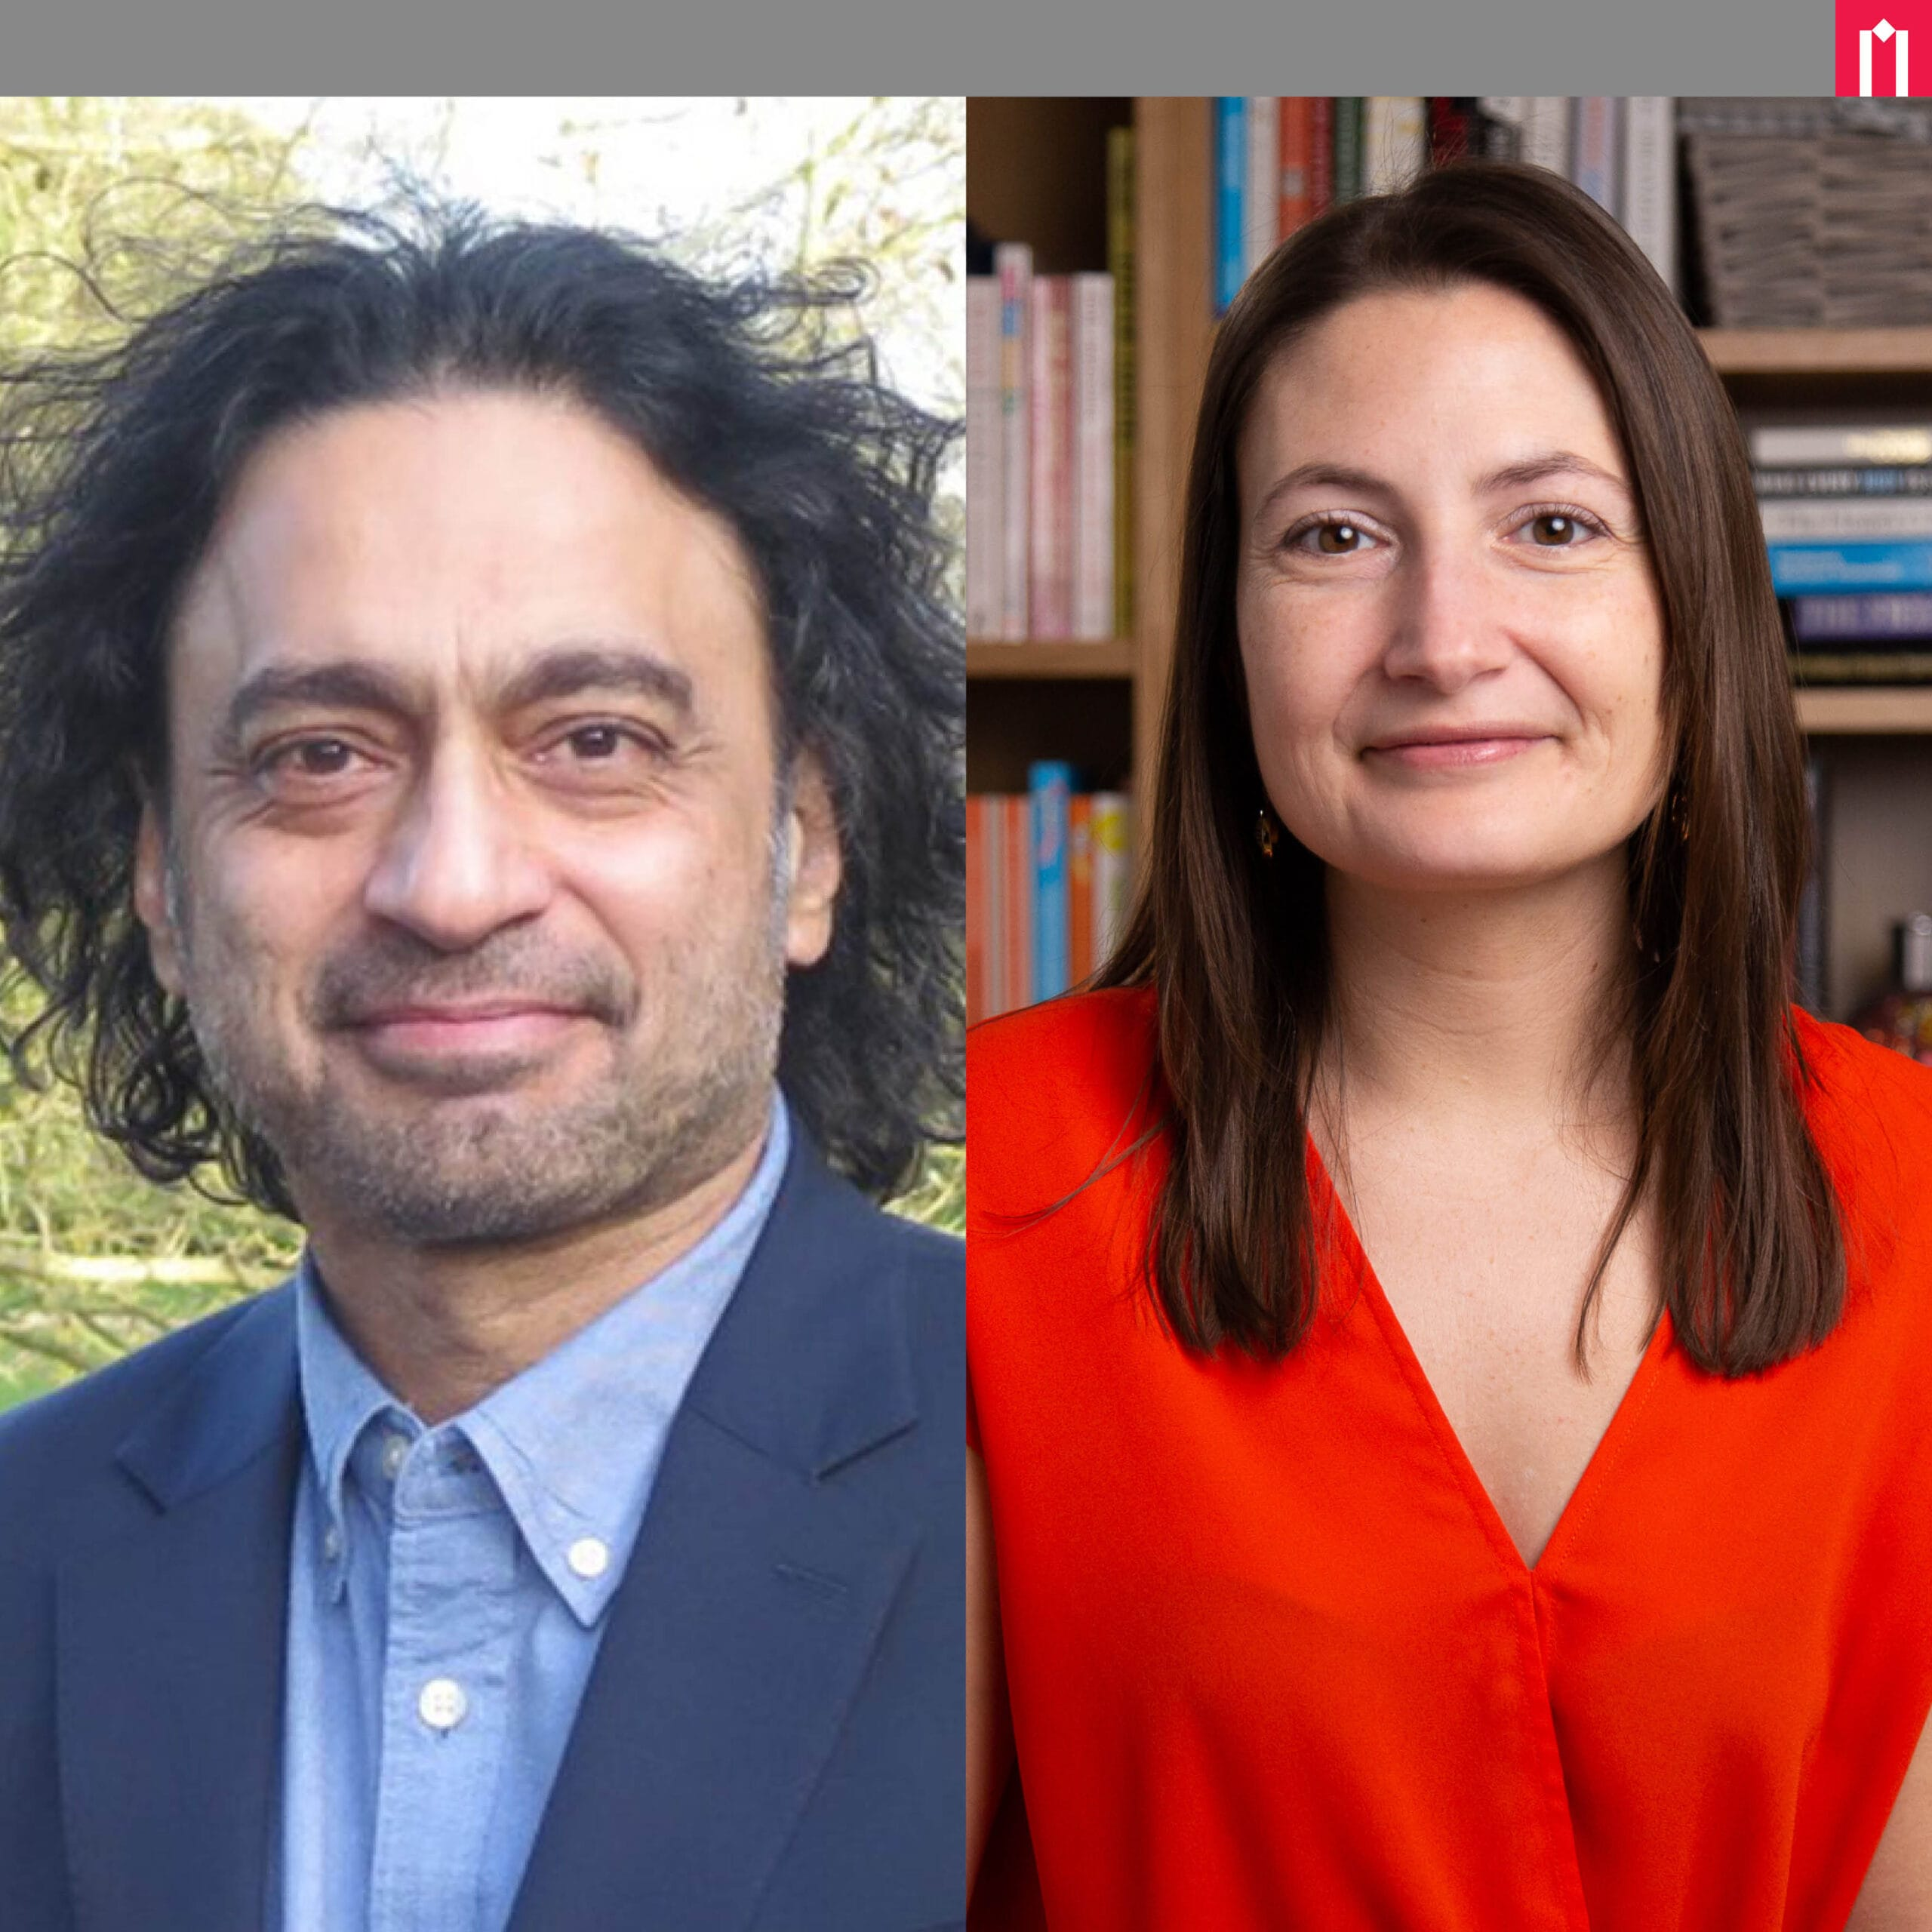 Picture of Sudhanshu Palsule and Amy Brann at Moller Institute